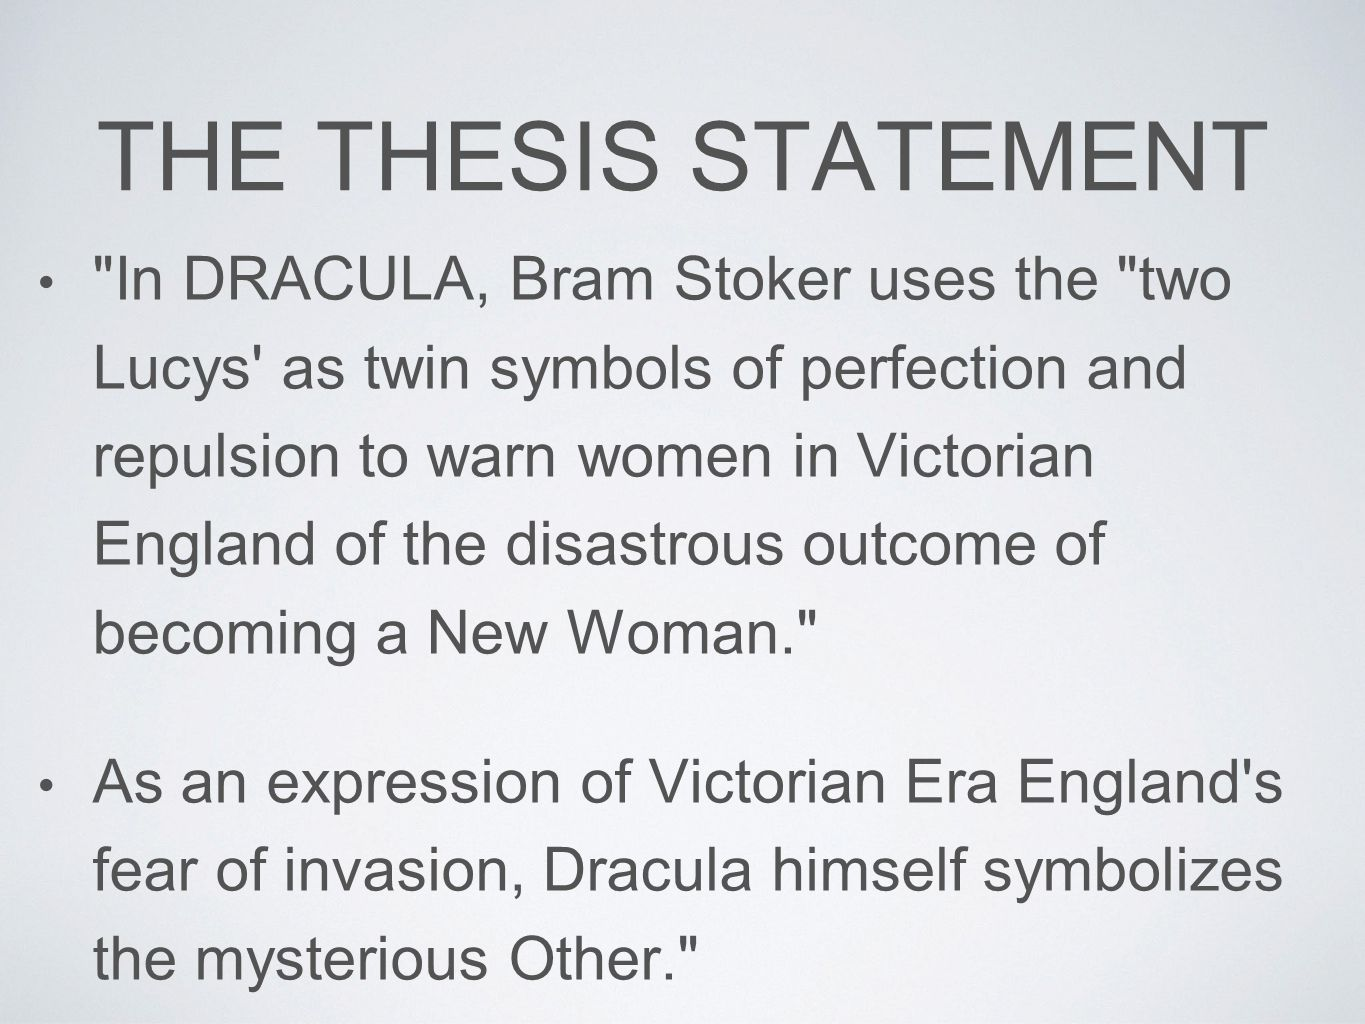 bram stoker dracula thesis Recollections of real persons, whom stoker has renamed and whose papers     he has recast, ostensibly to  essay, i will argue that dracula enacts and  interrogates this late victorian epistemological  bram stoker's dracula  unearthed.